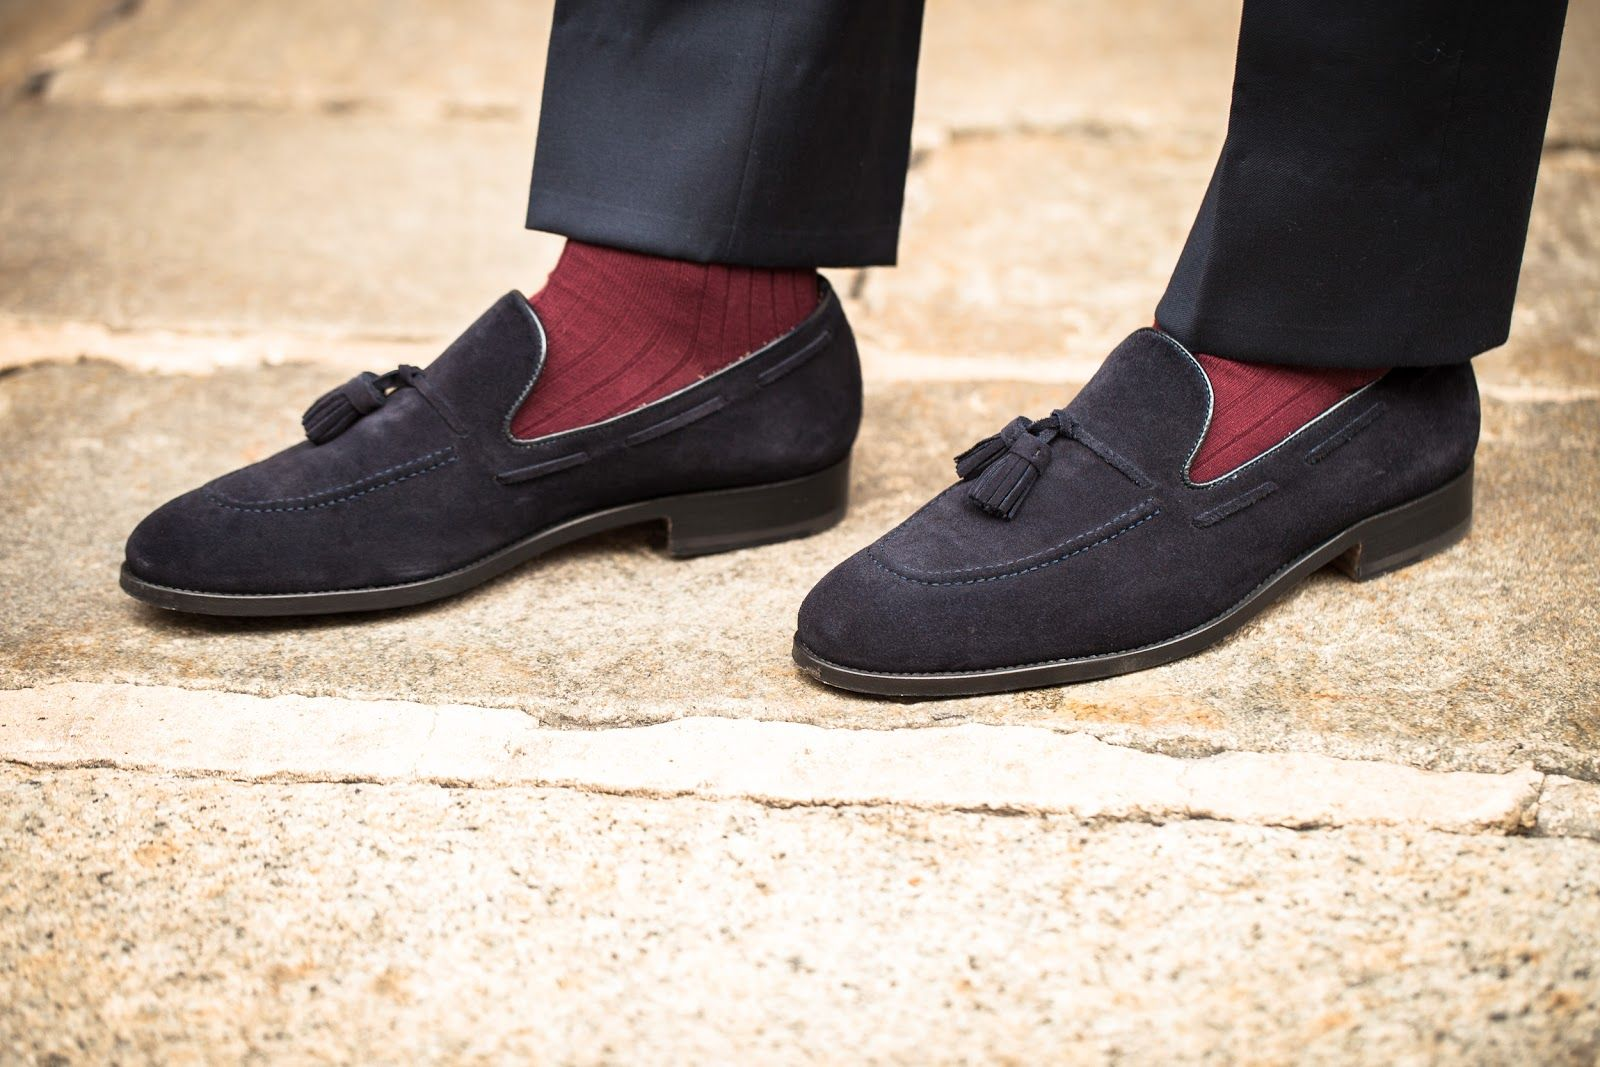 FORMAL-BOY-tassel-loafers-red-blue-style.jpeg 1.600×1.067 pixels